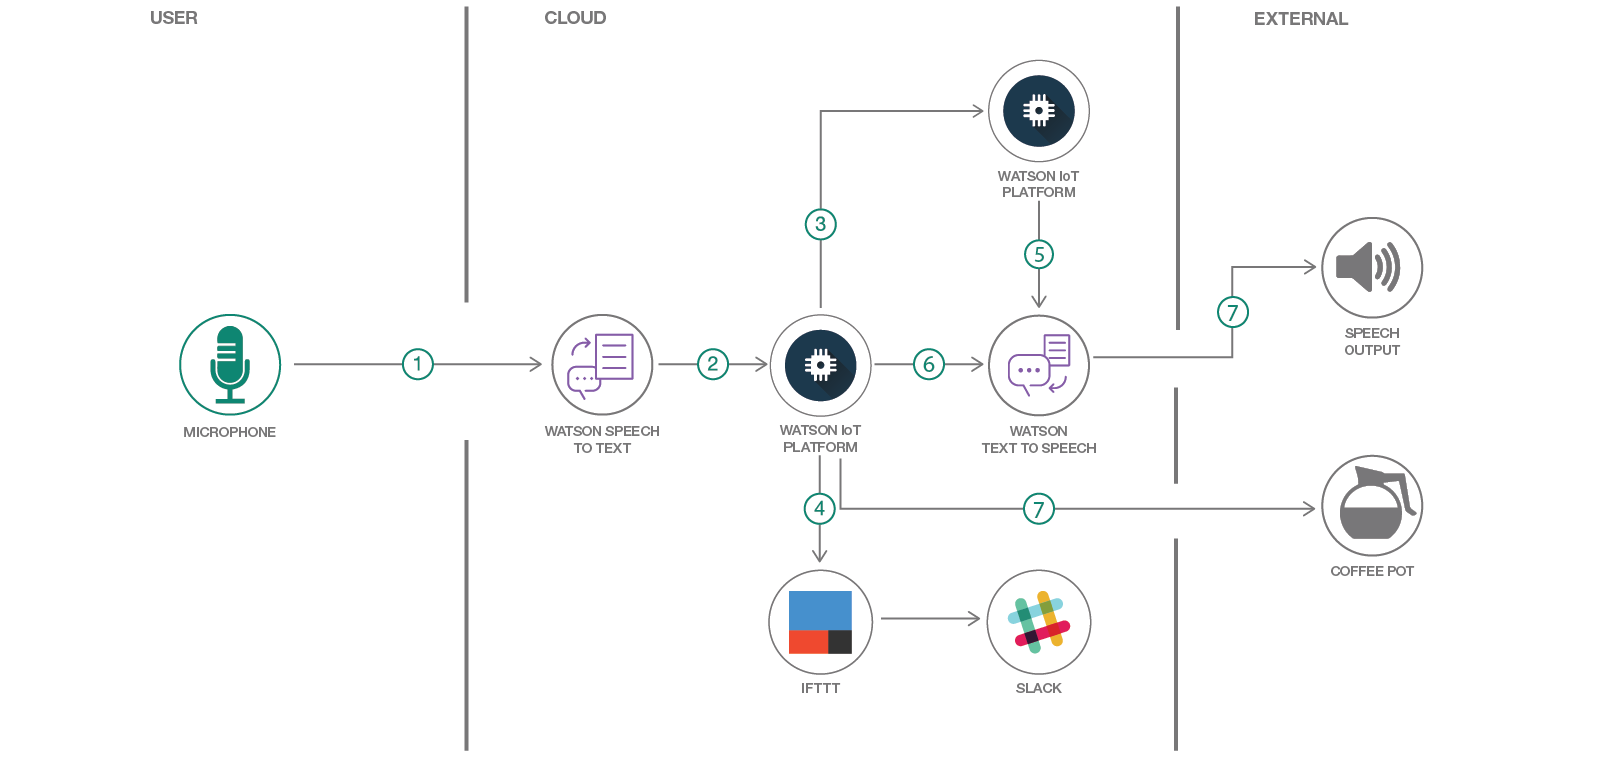 Architecture diagram for creating a custom voice experience